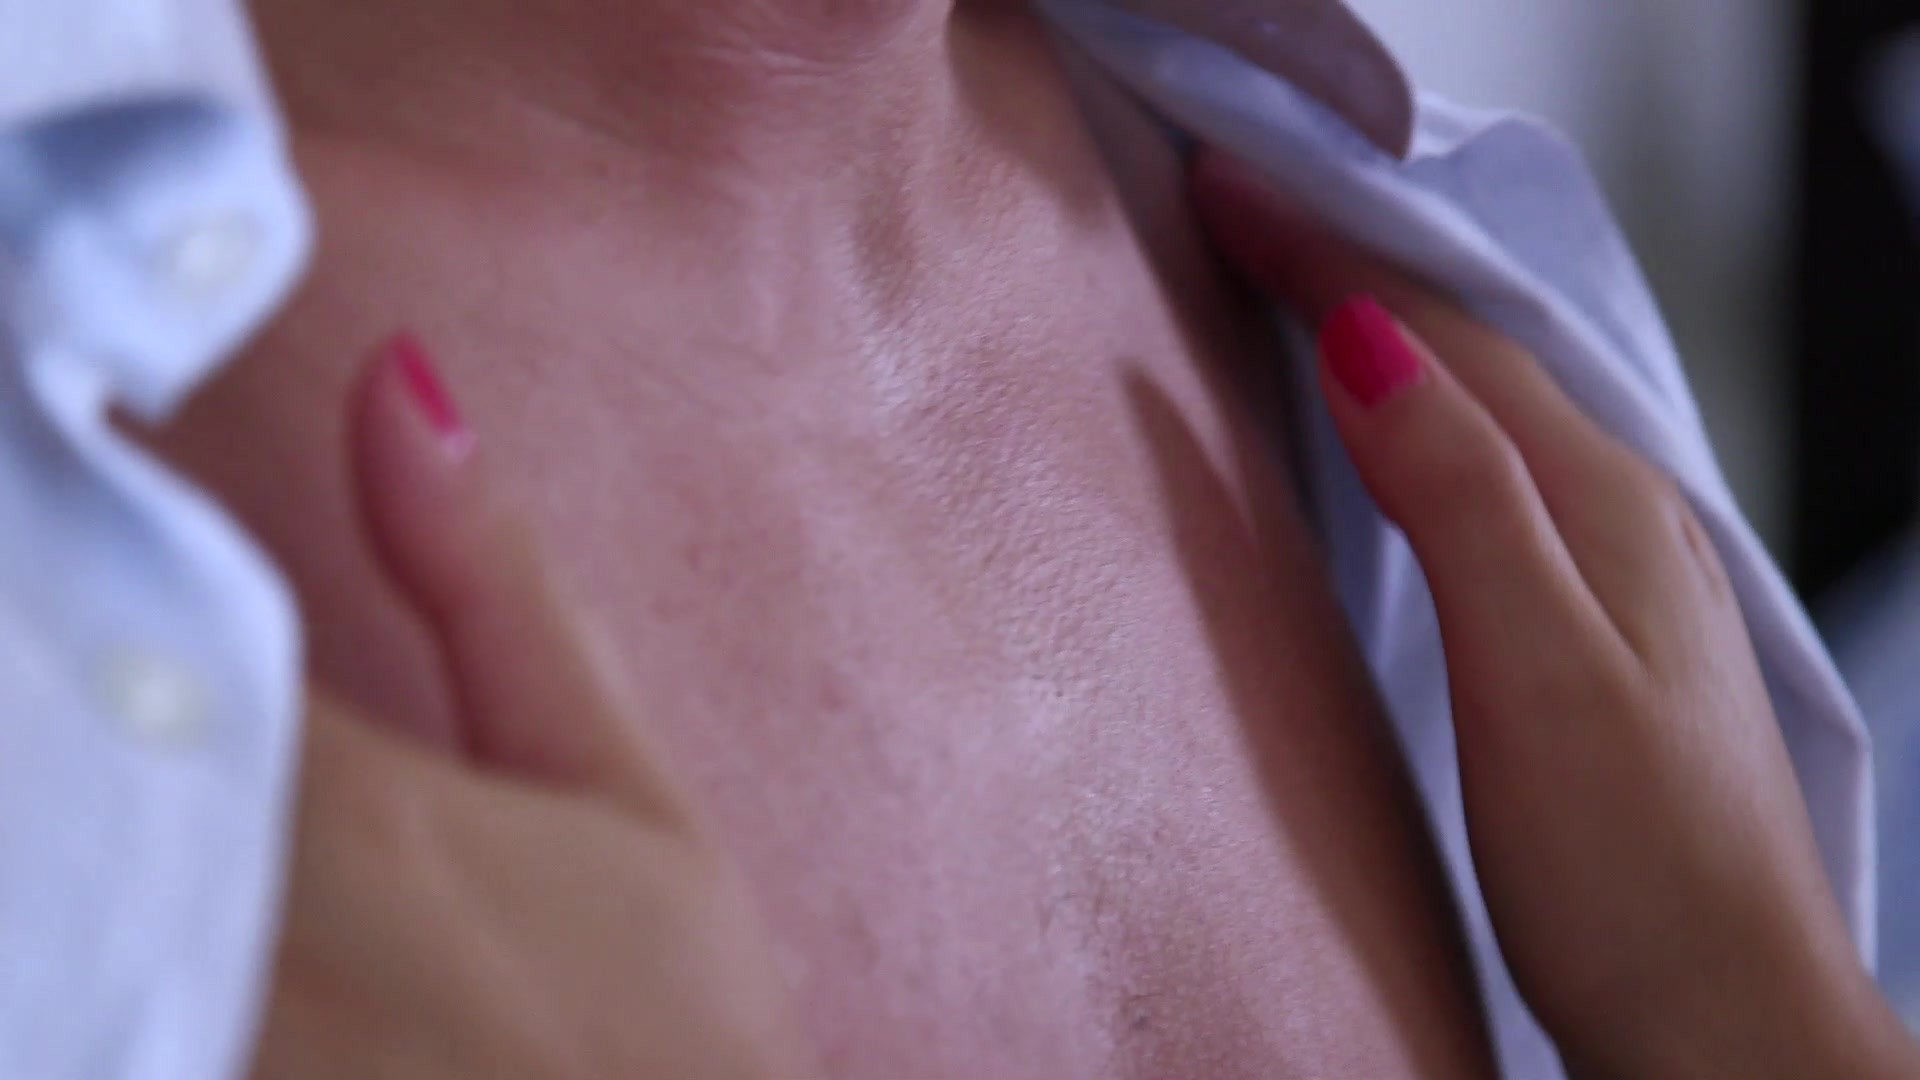 Scene with Mick Blue, Tommy Pistol and Valentina Nappi - image 4 out of 20